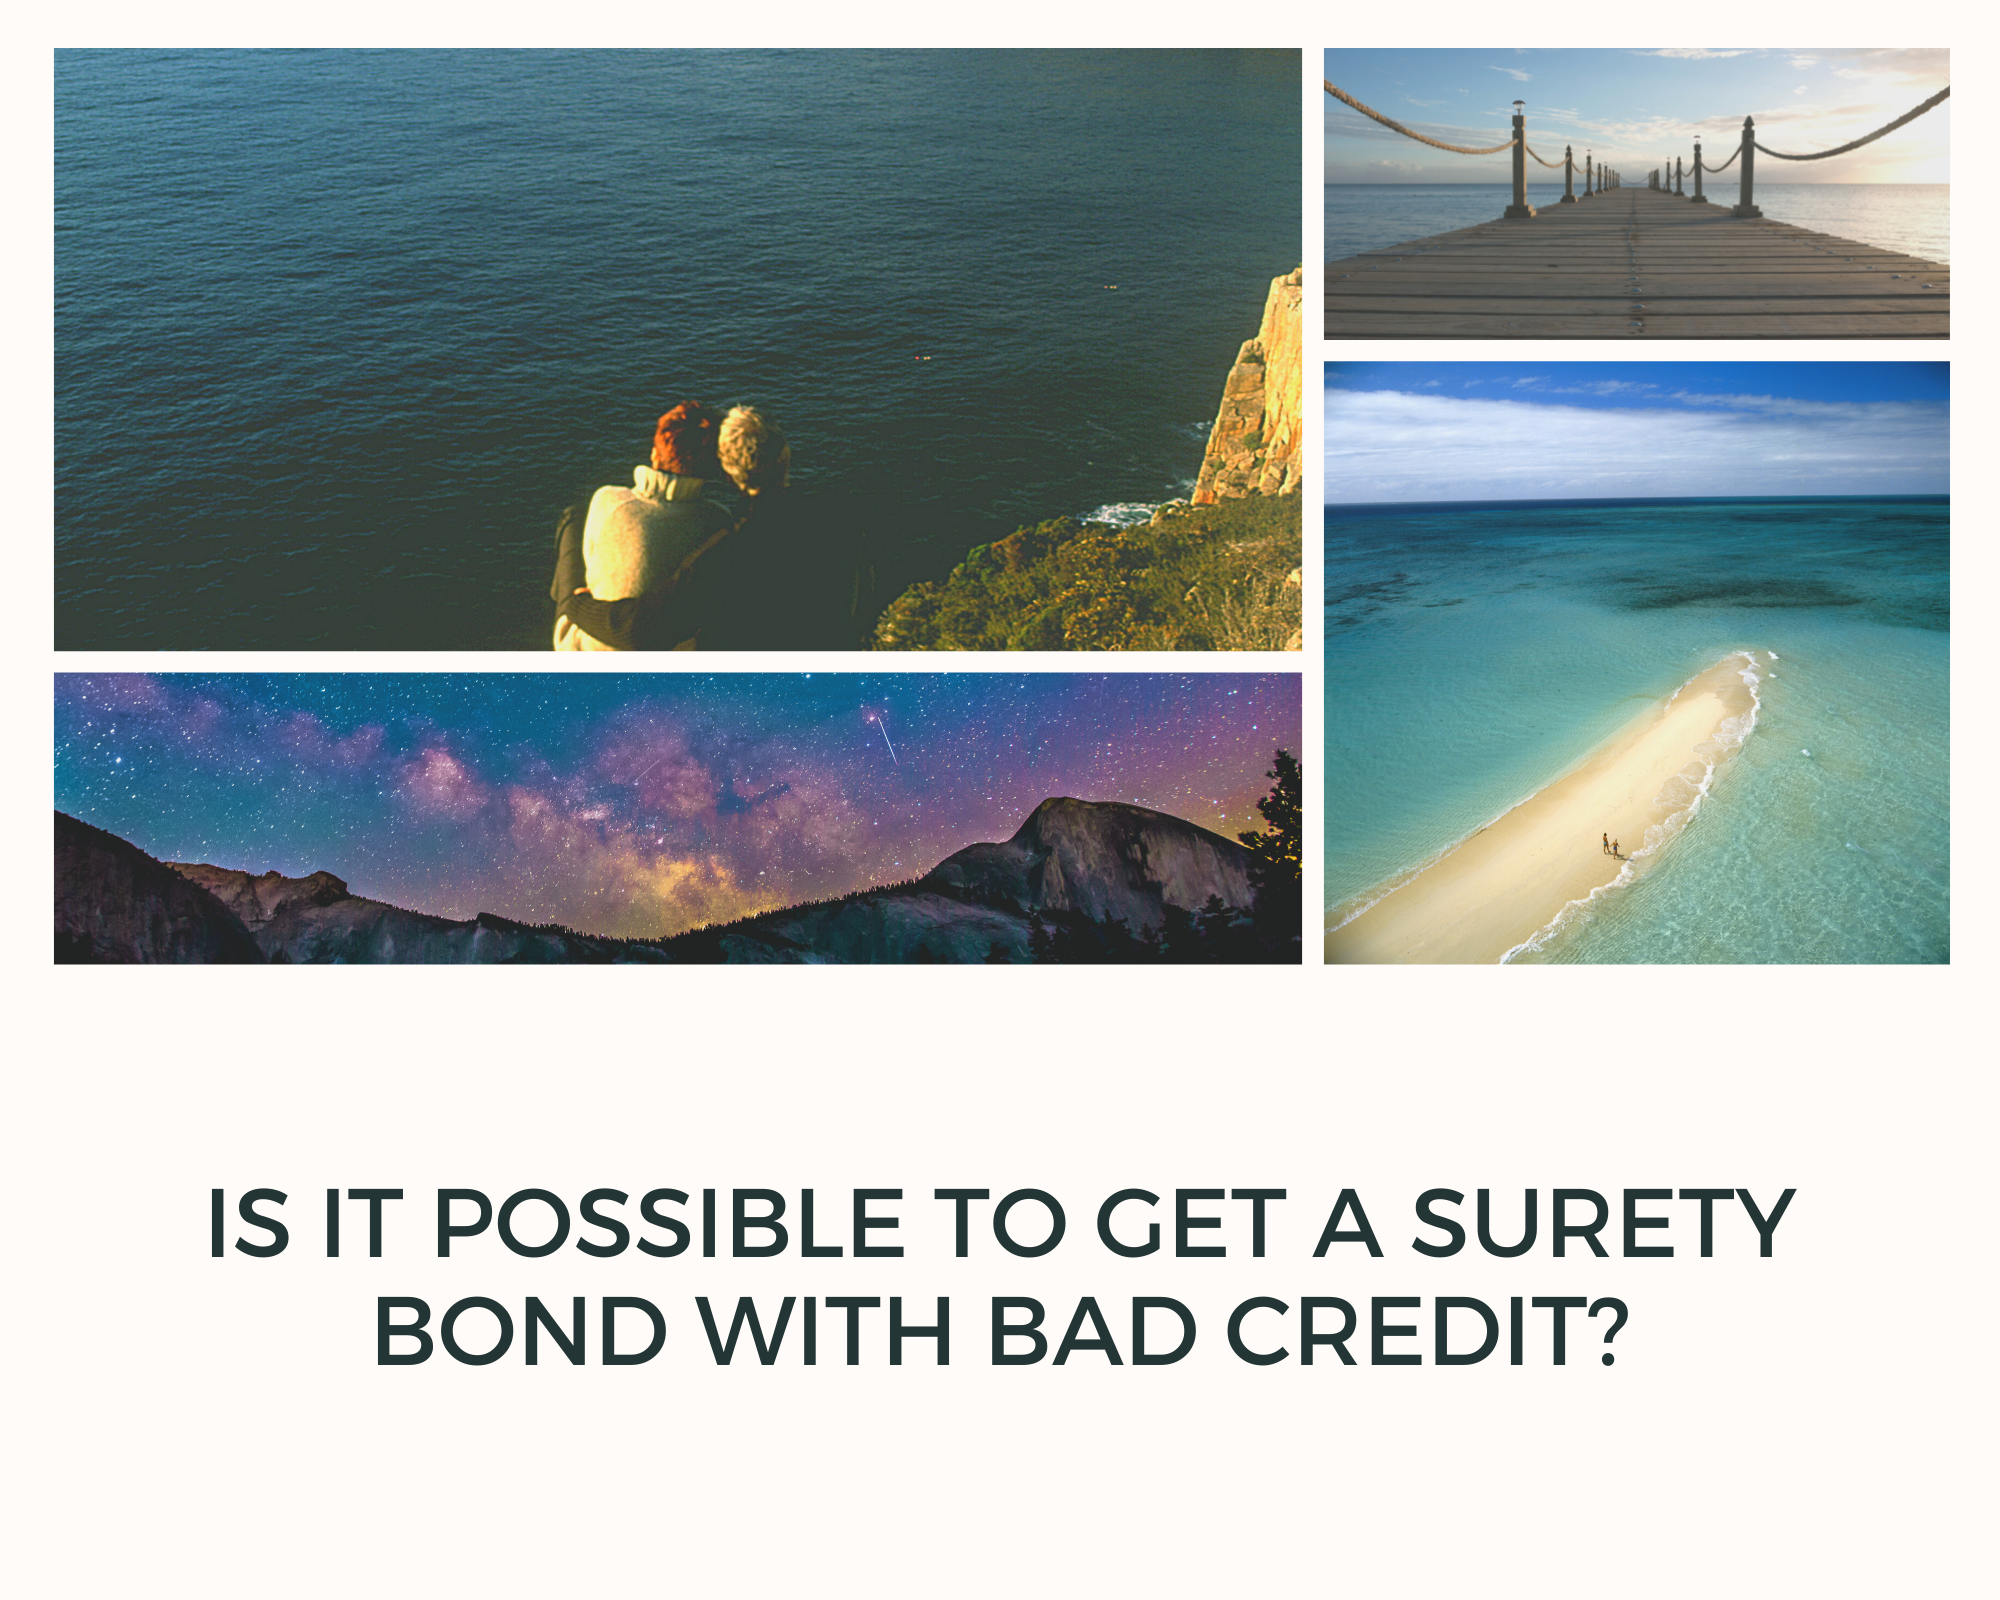 surety bond - what is the minimum credit score required for bonding - collage of nature photos